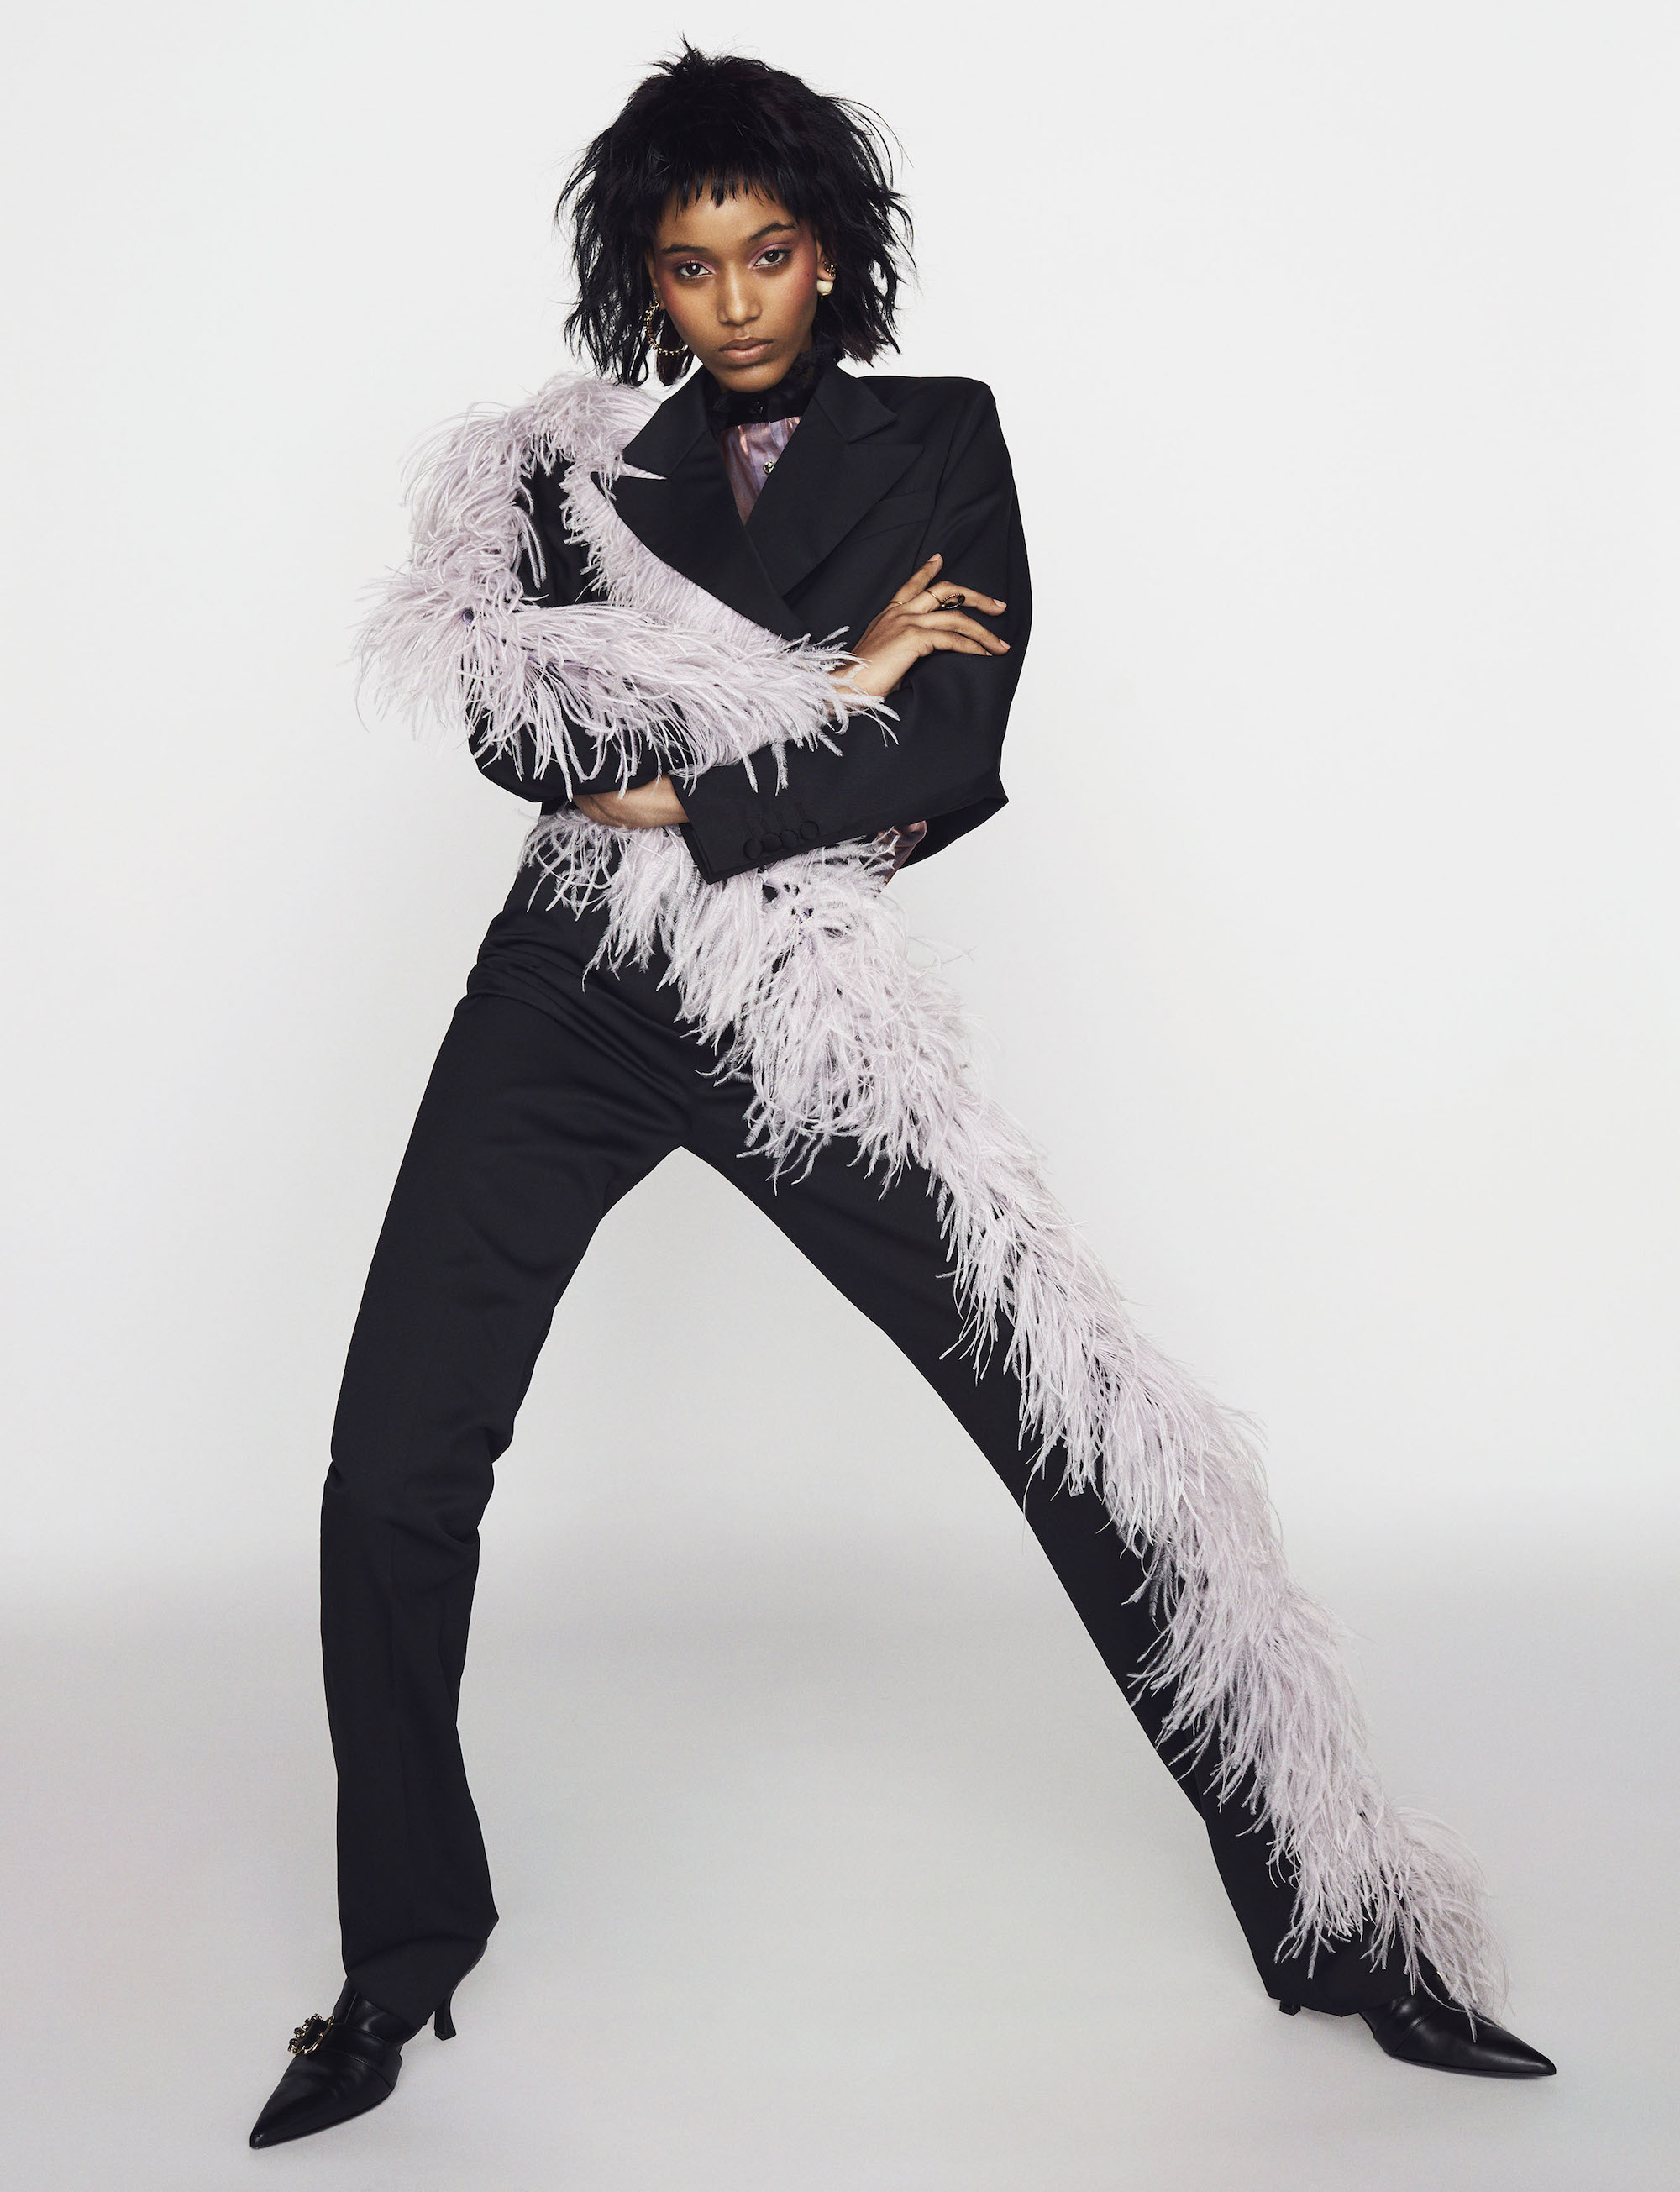 Main fashion editorial in Winter 18/19 issue model in feather suit